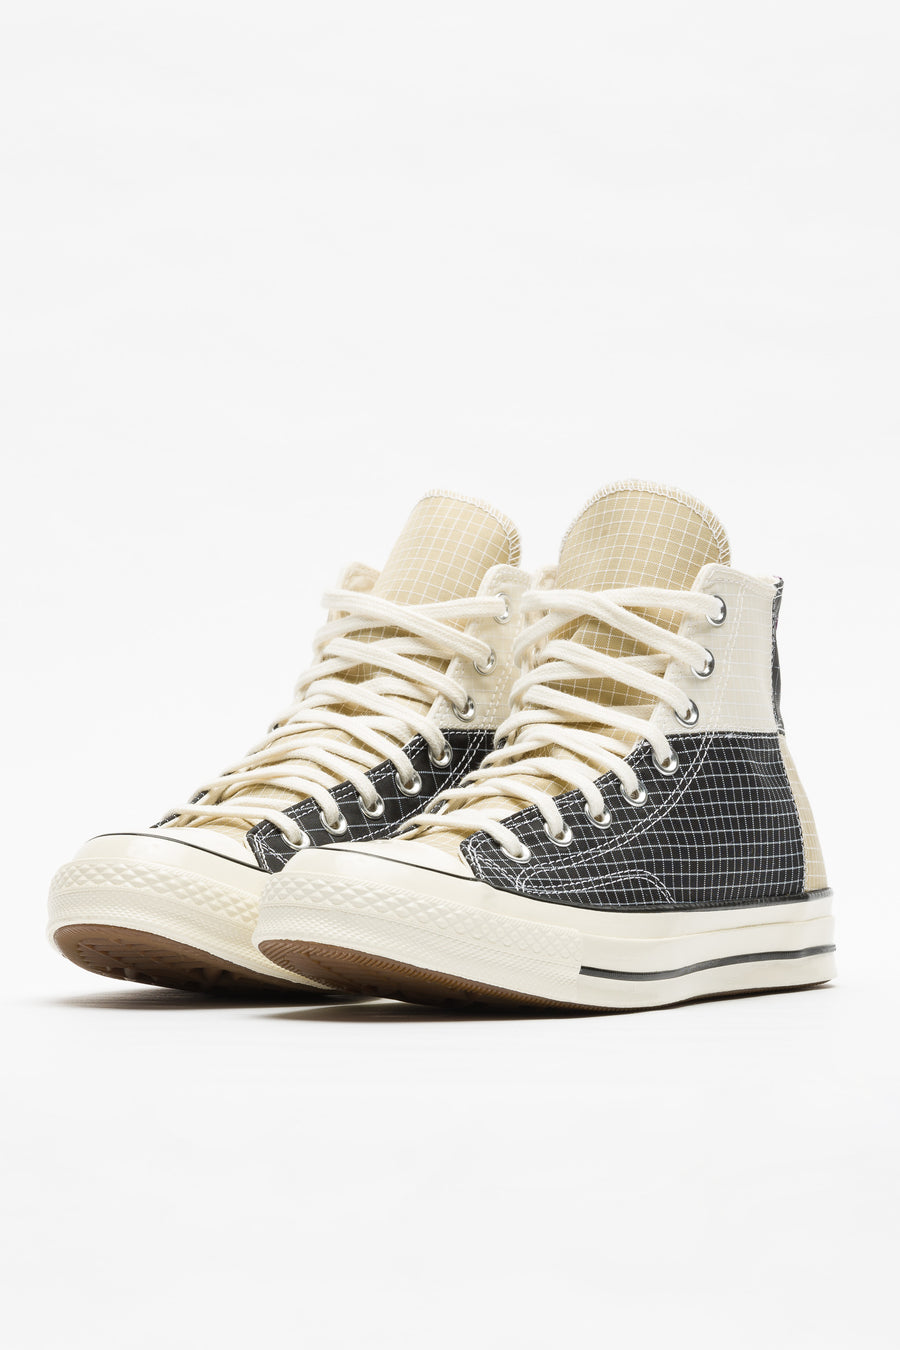 Converse Chuck 70 Hi Panel in Black/Egret/Oyster Grey - Notre